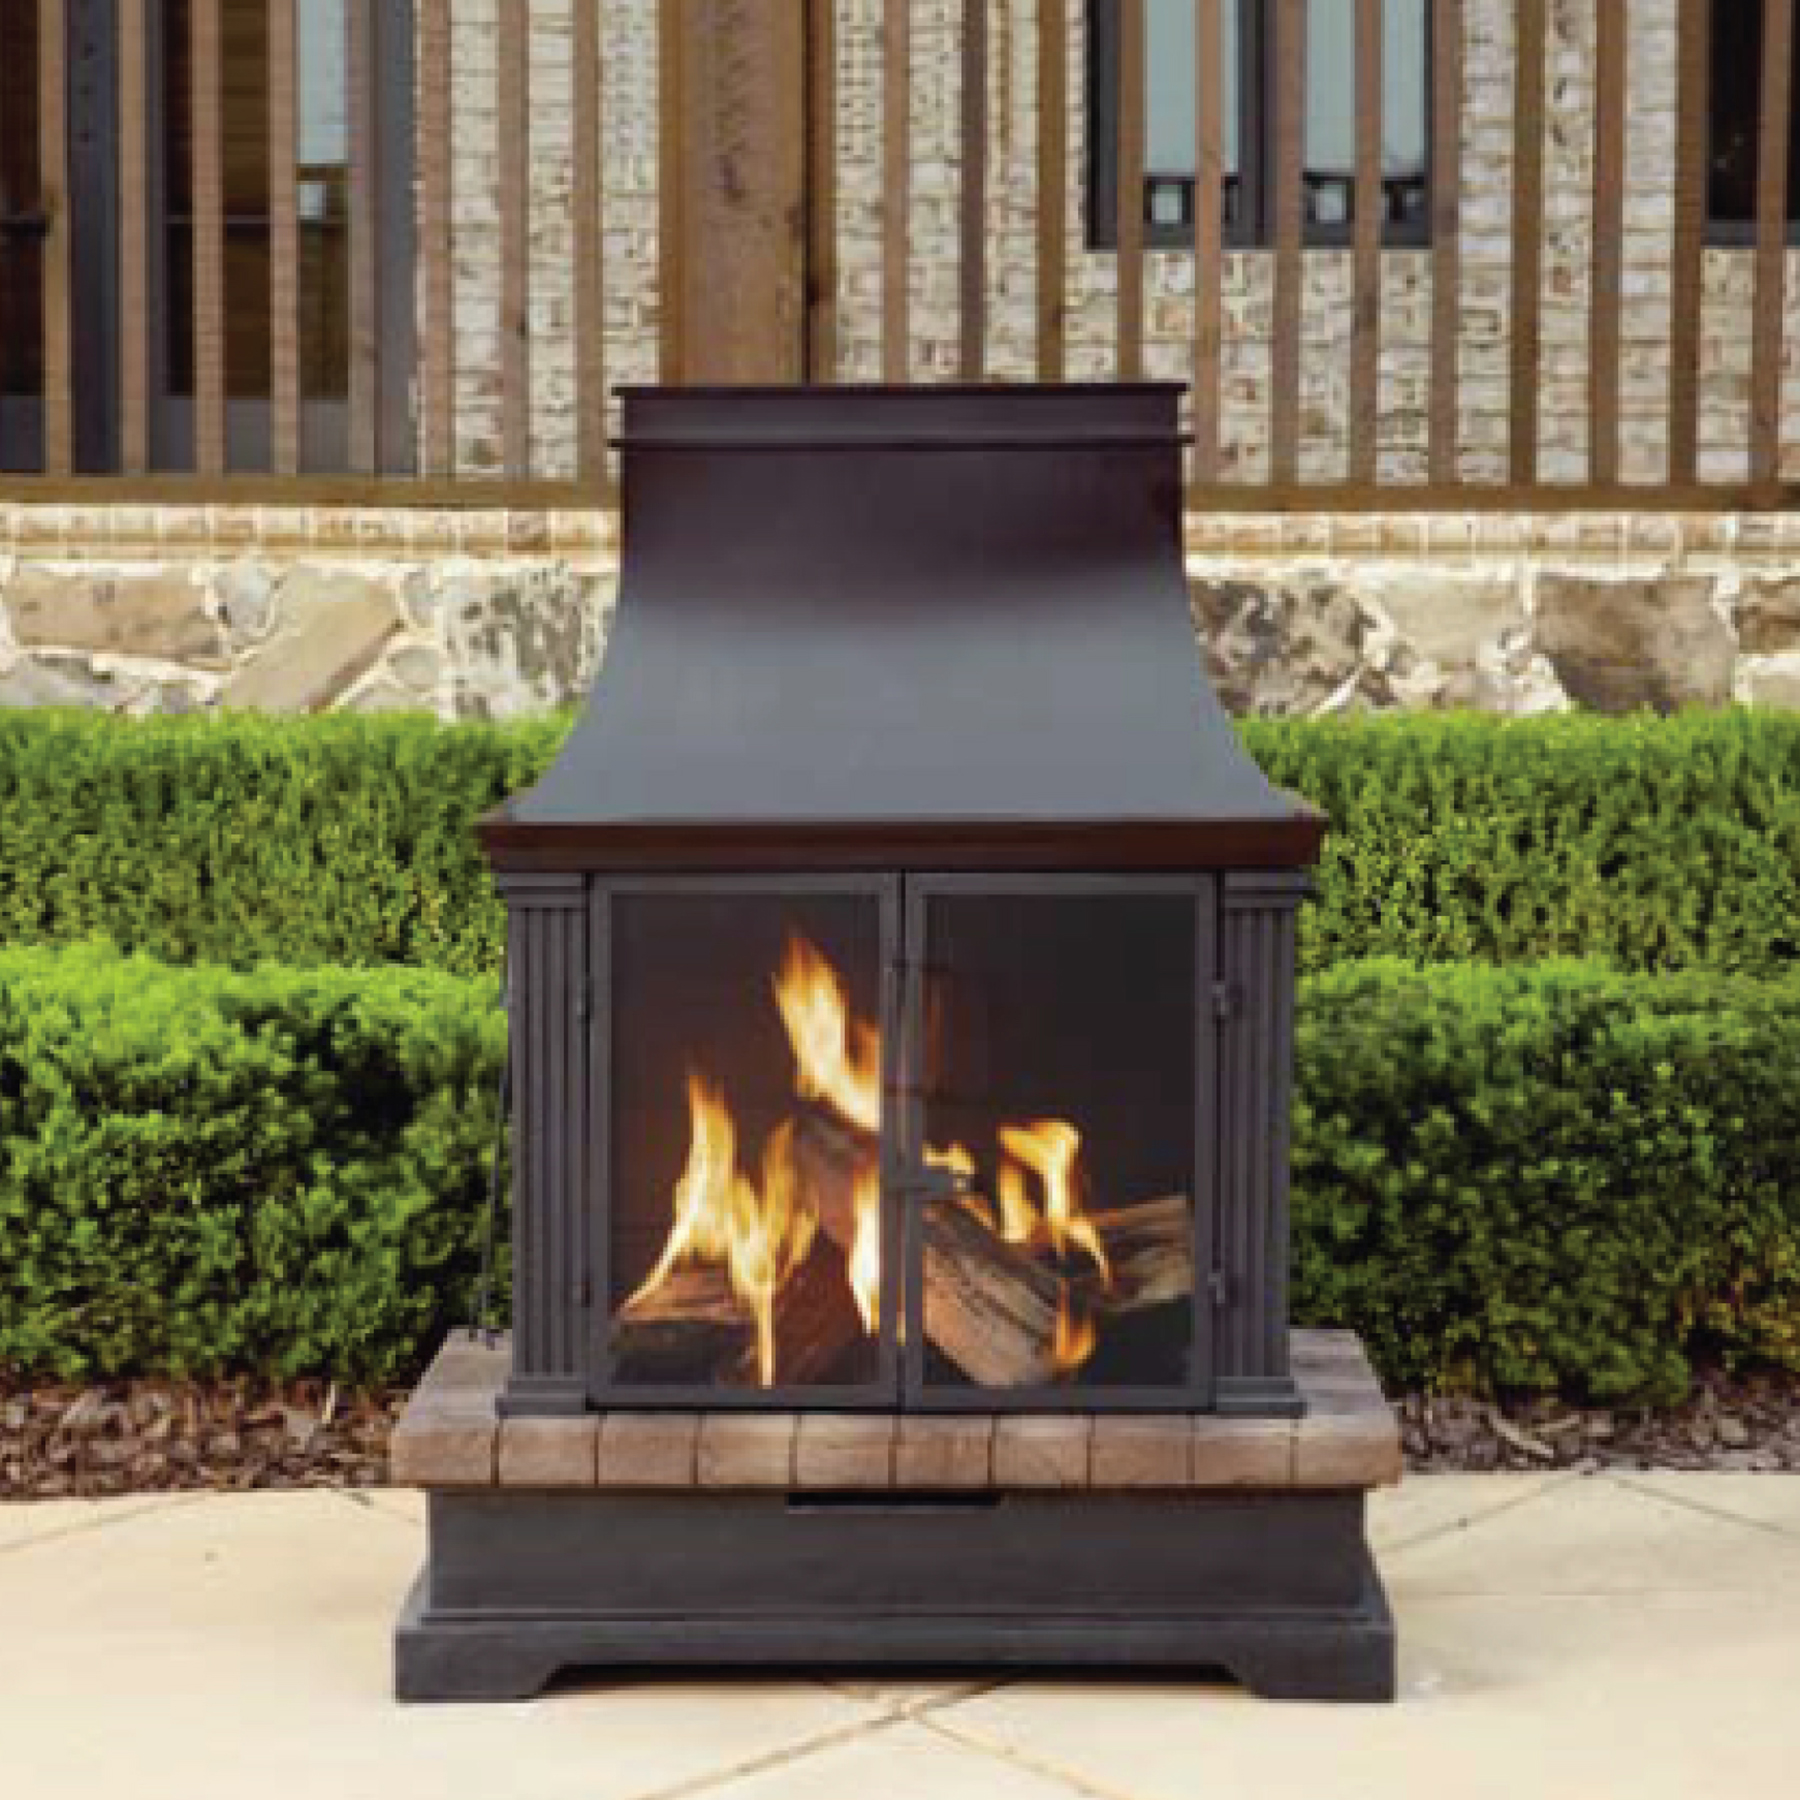 Garden Oasis Wood Burning Fireplace* Limited Availability